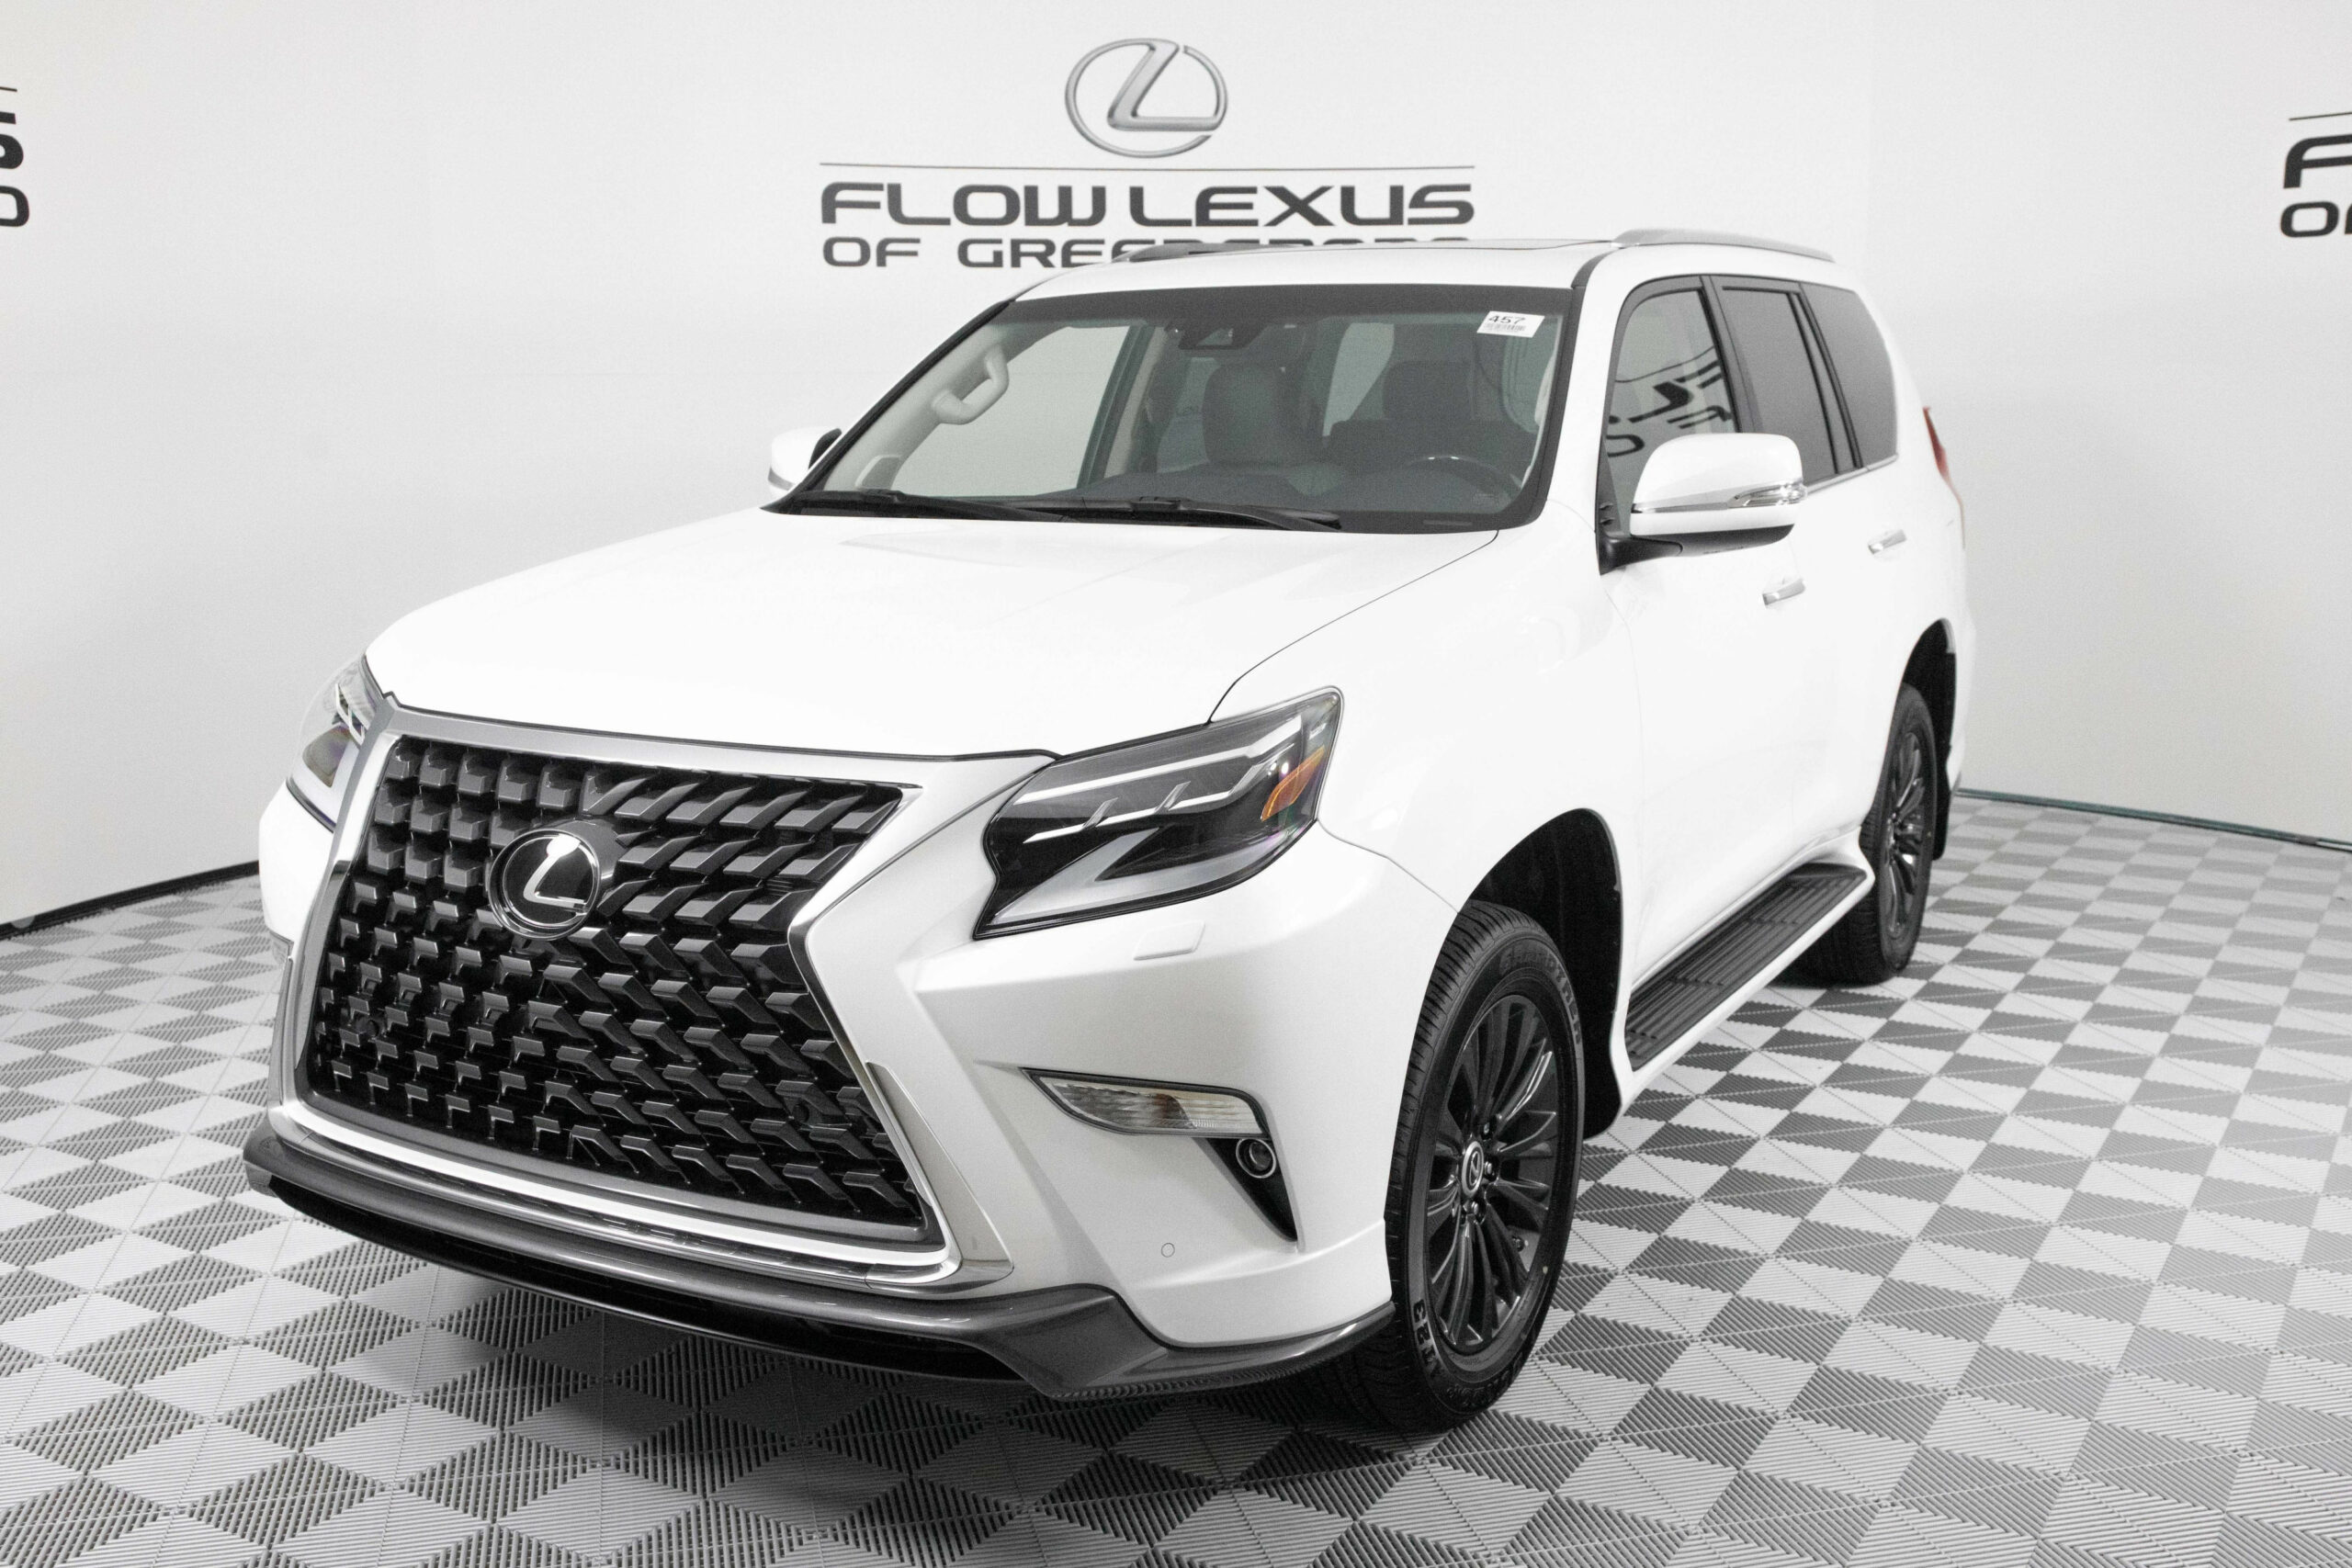 New 8 LEXUS GX 8 For Sale at Flow Lexus of Greensboro | VIN:  JTJAM8BX8L5244580 - lexus ball 2020